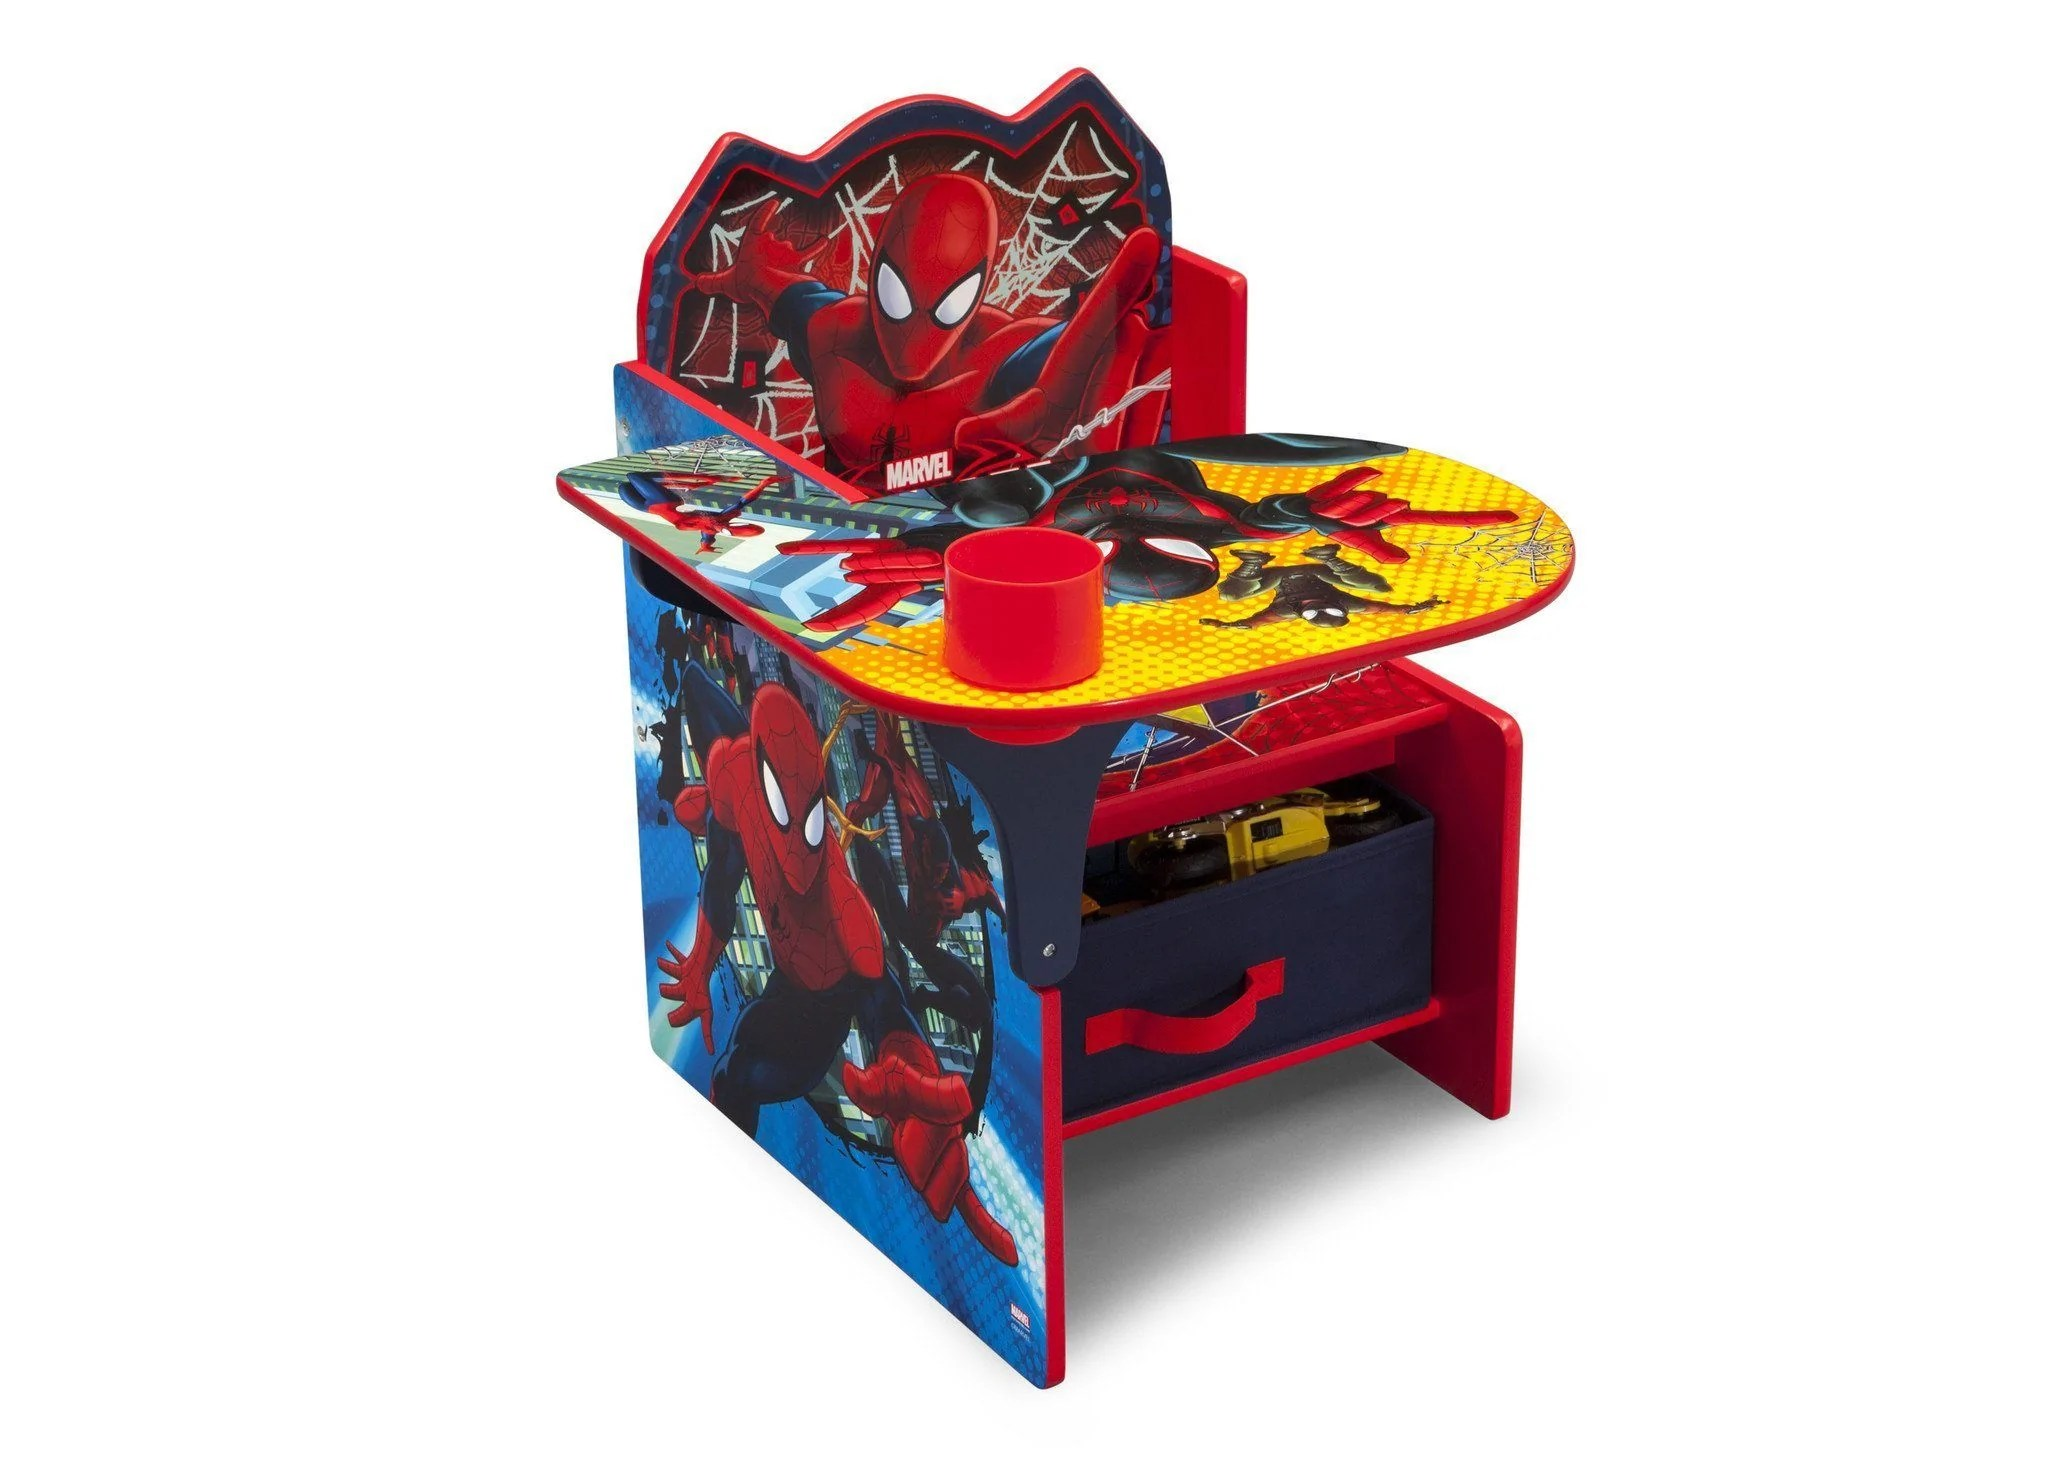 spiderman table and chairs bedroom chair design ideas image desk with storage bin delta children